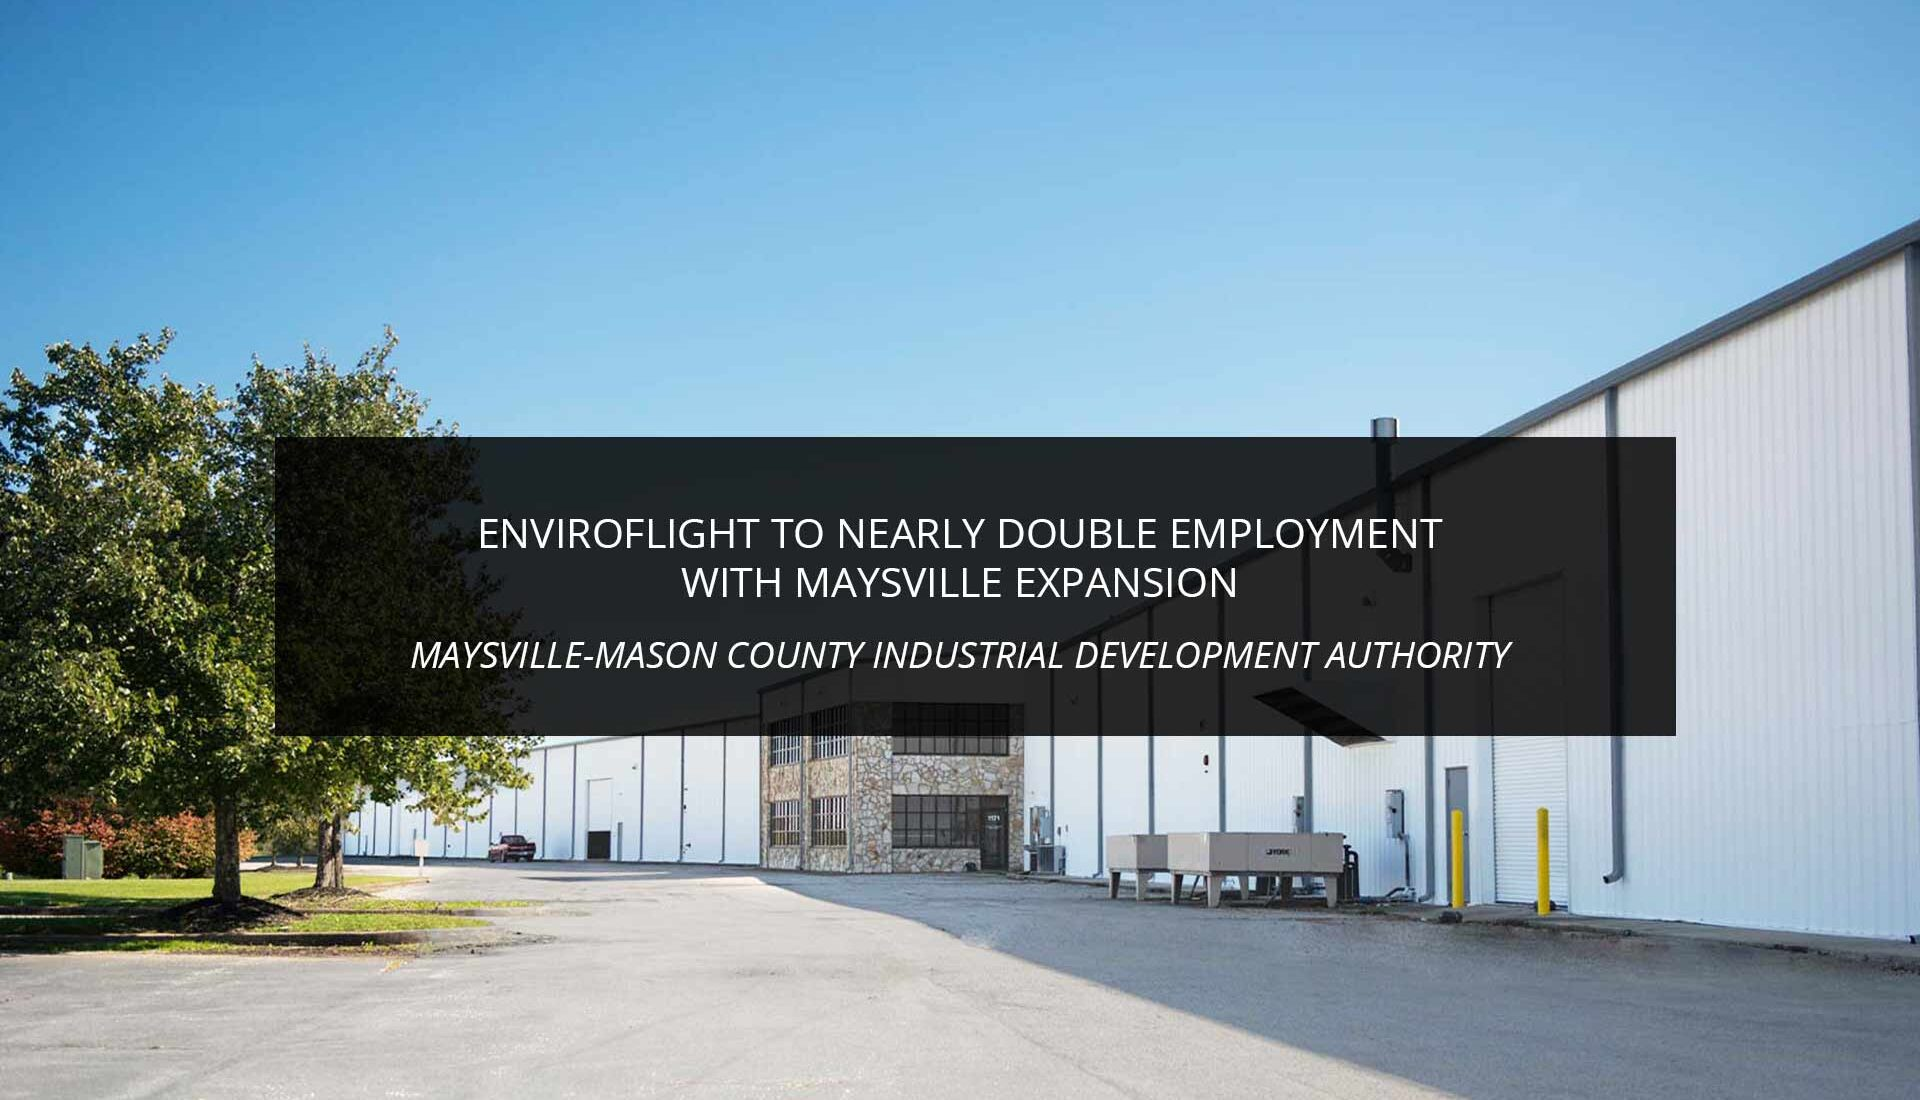 Enviroflight to Nearly Double Employment with Maysville Expansion